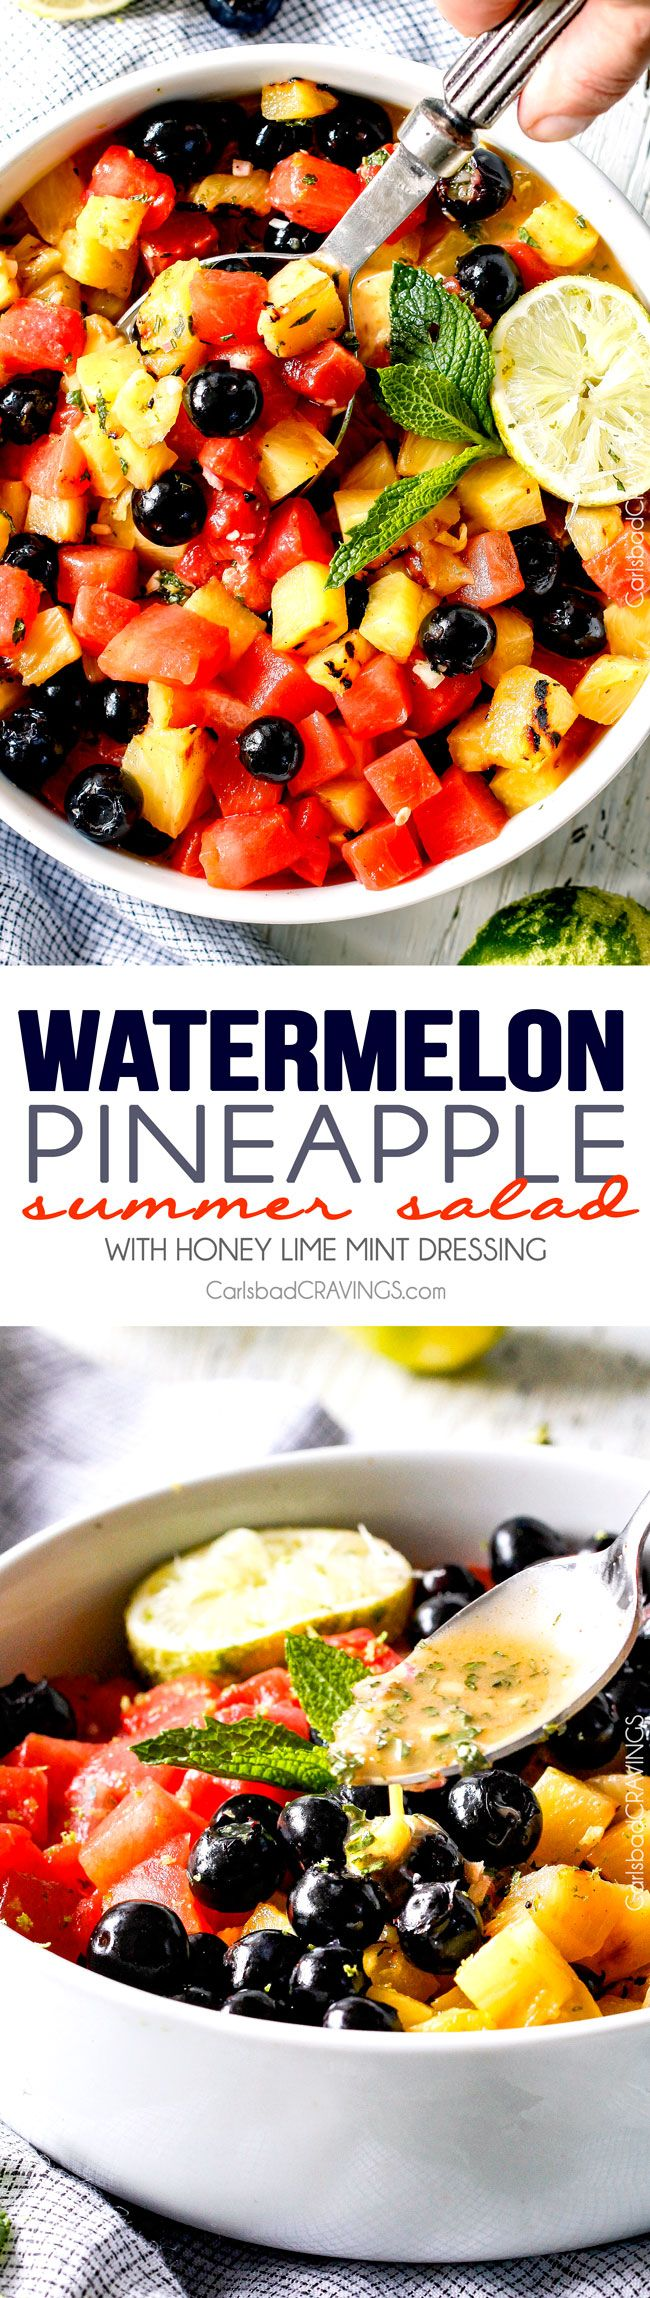 (Grilled optional) Watermelon Pineapple Summer Salad with Honey Lime Mint Dressing - This is possibly the best fruit salad I have ever had the pleasure of making and its so easy! I'm asked all the time to bring it get-togethers and what I especially love is you can use any fruit you want. One of my go to summer recipes! #4thofjuly #grill